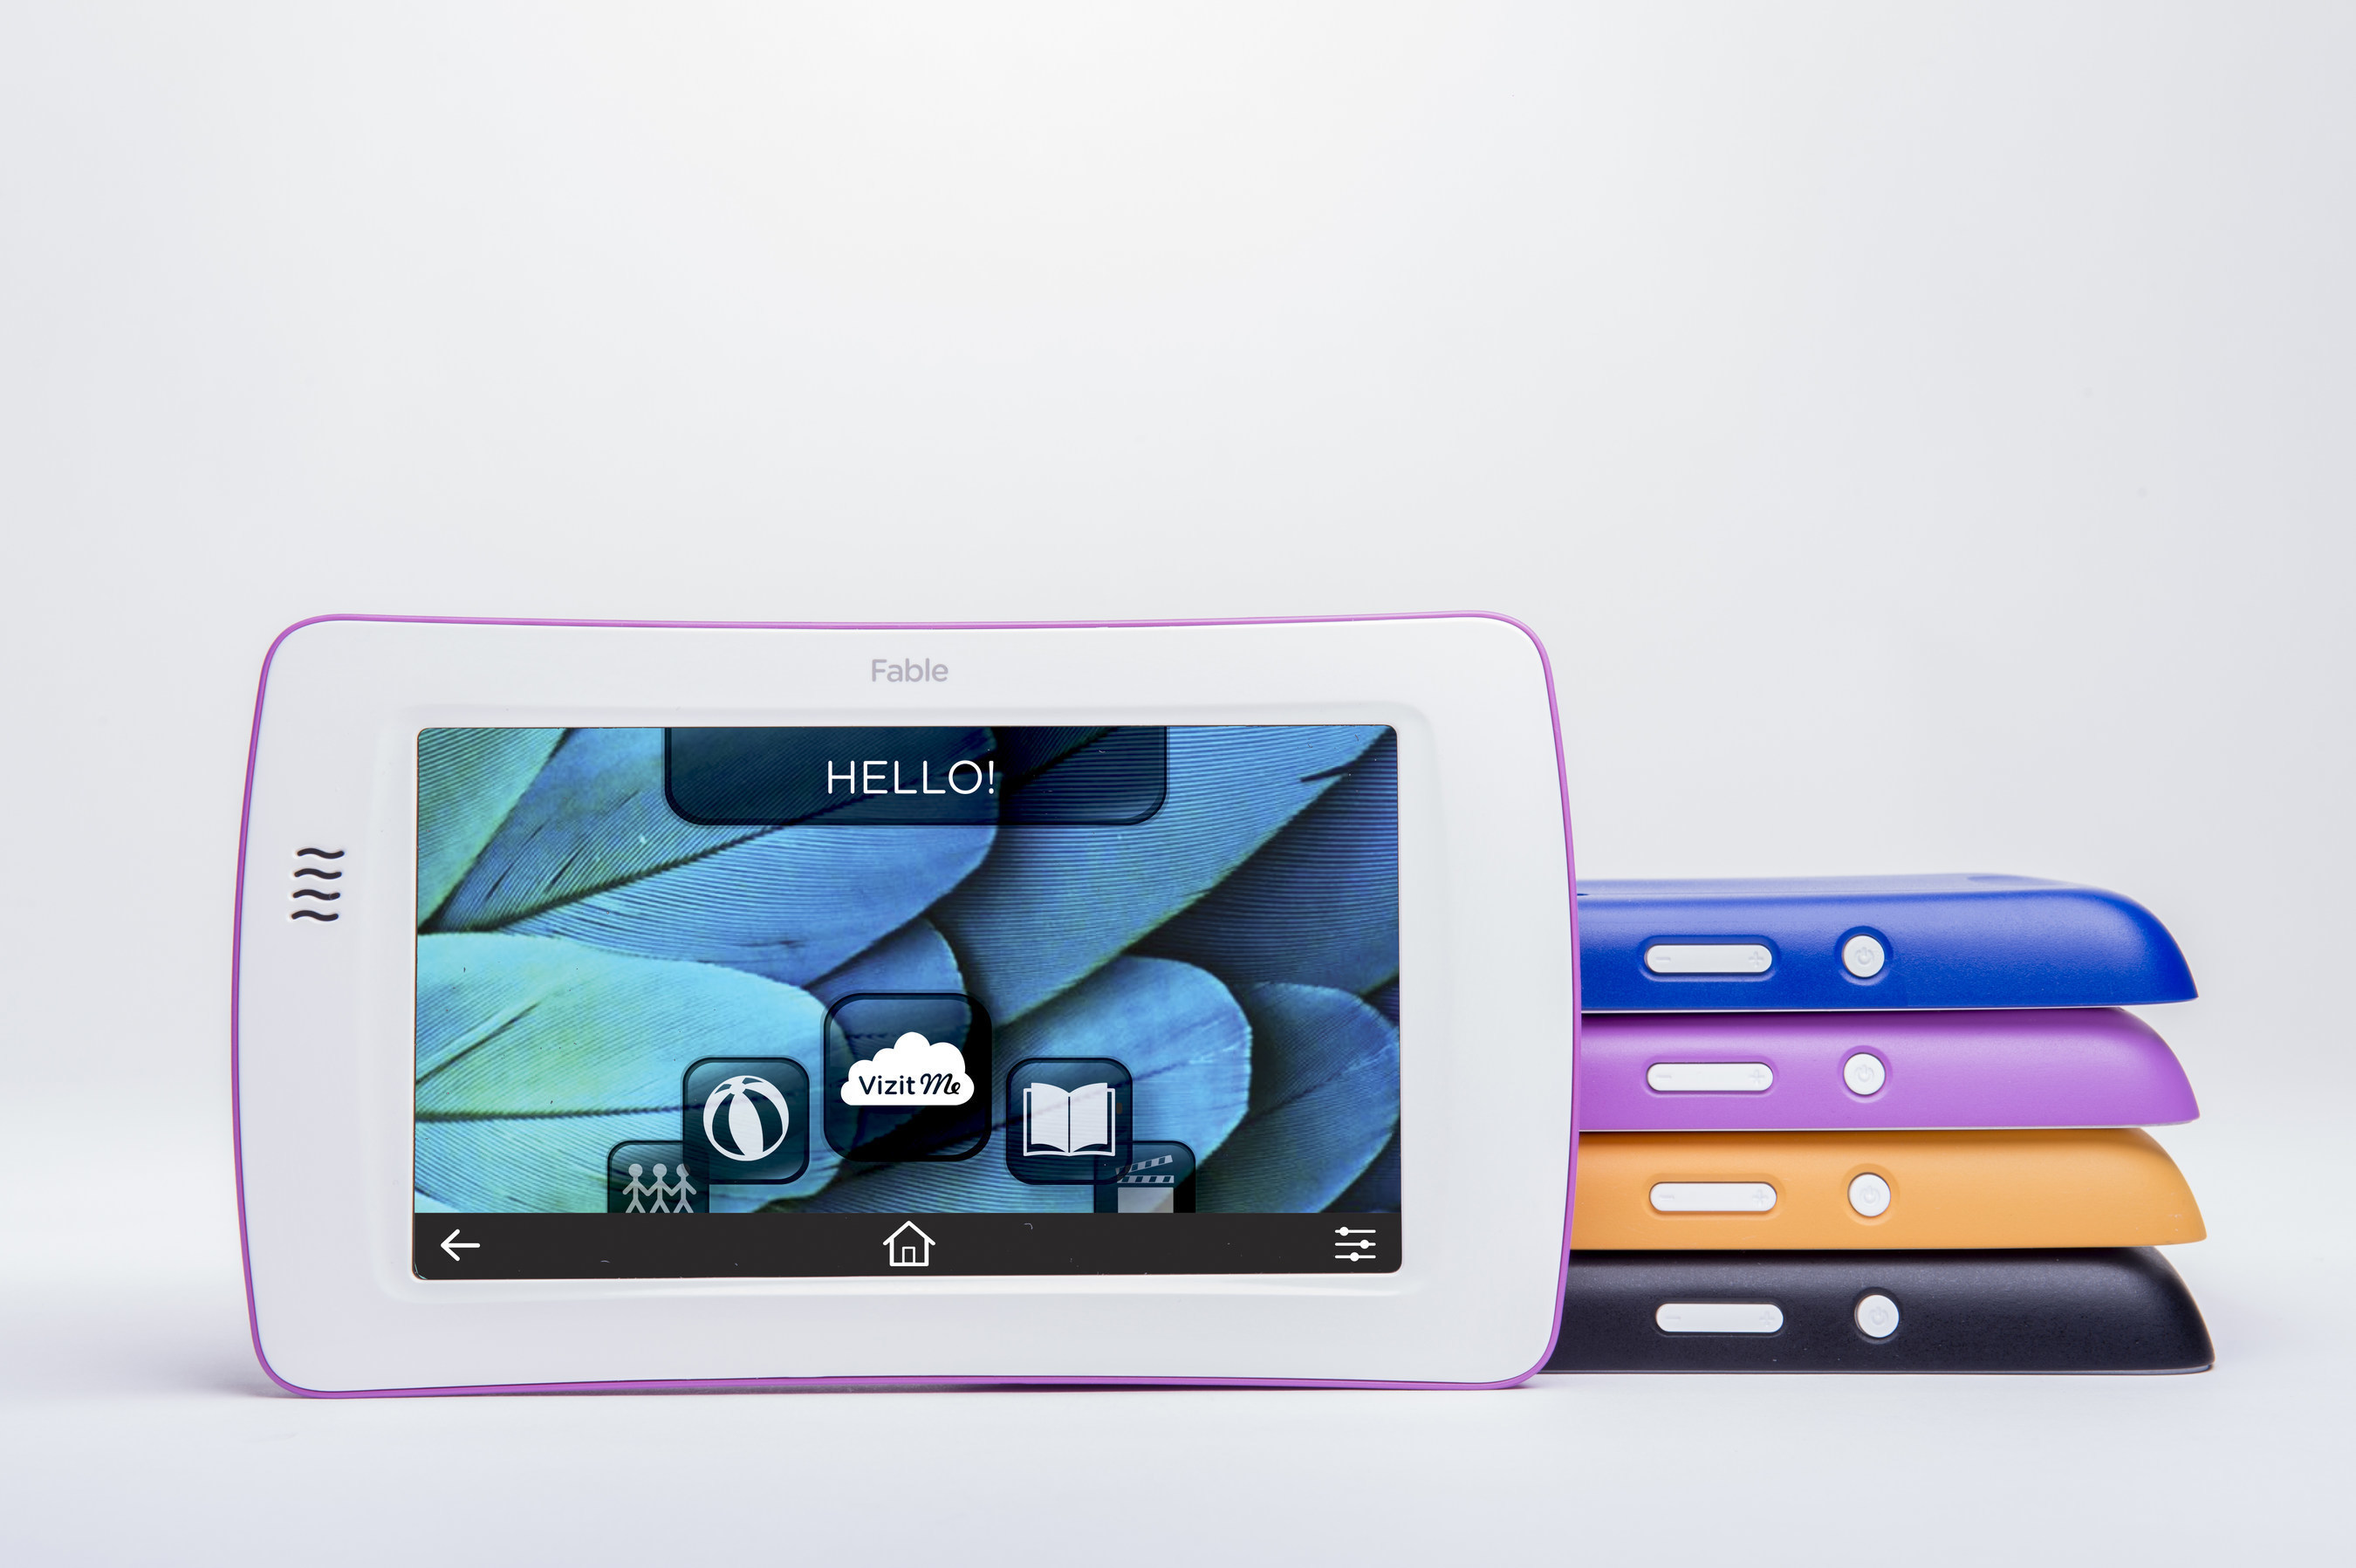 The new, browser-free Fable tablet exclusively for children allows youngsters to learn, create and share from a collection of digital content including books, apps, games, videos and projects.